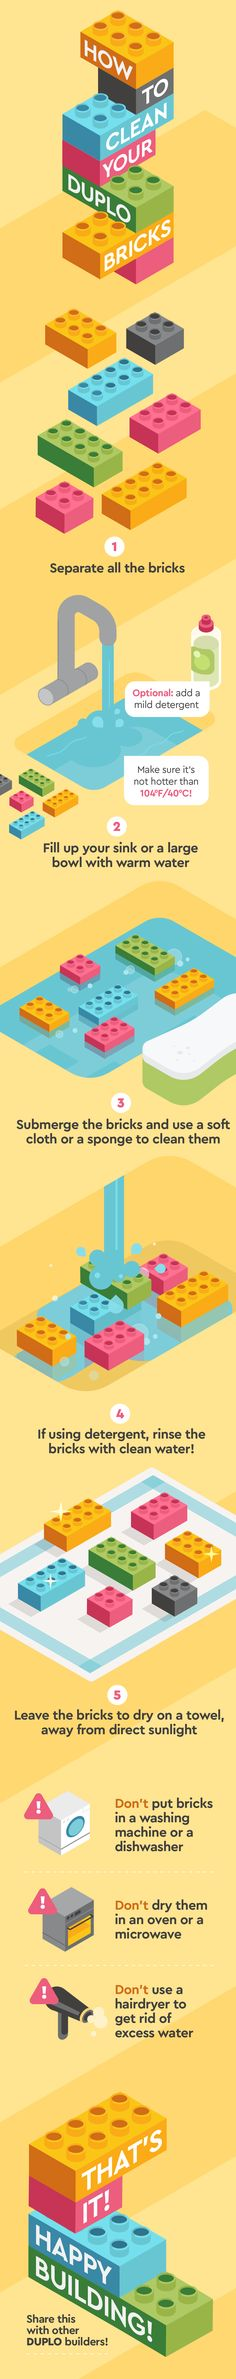 The official LEGO guidelines on how to clean your LEGO DUPLO bricks to ensure you don't damage them in the process!